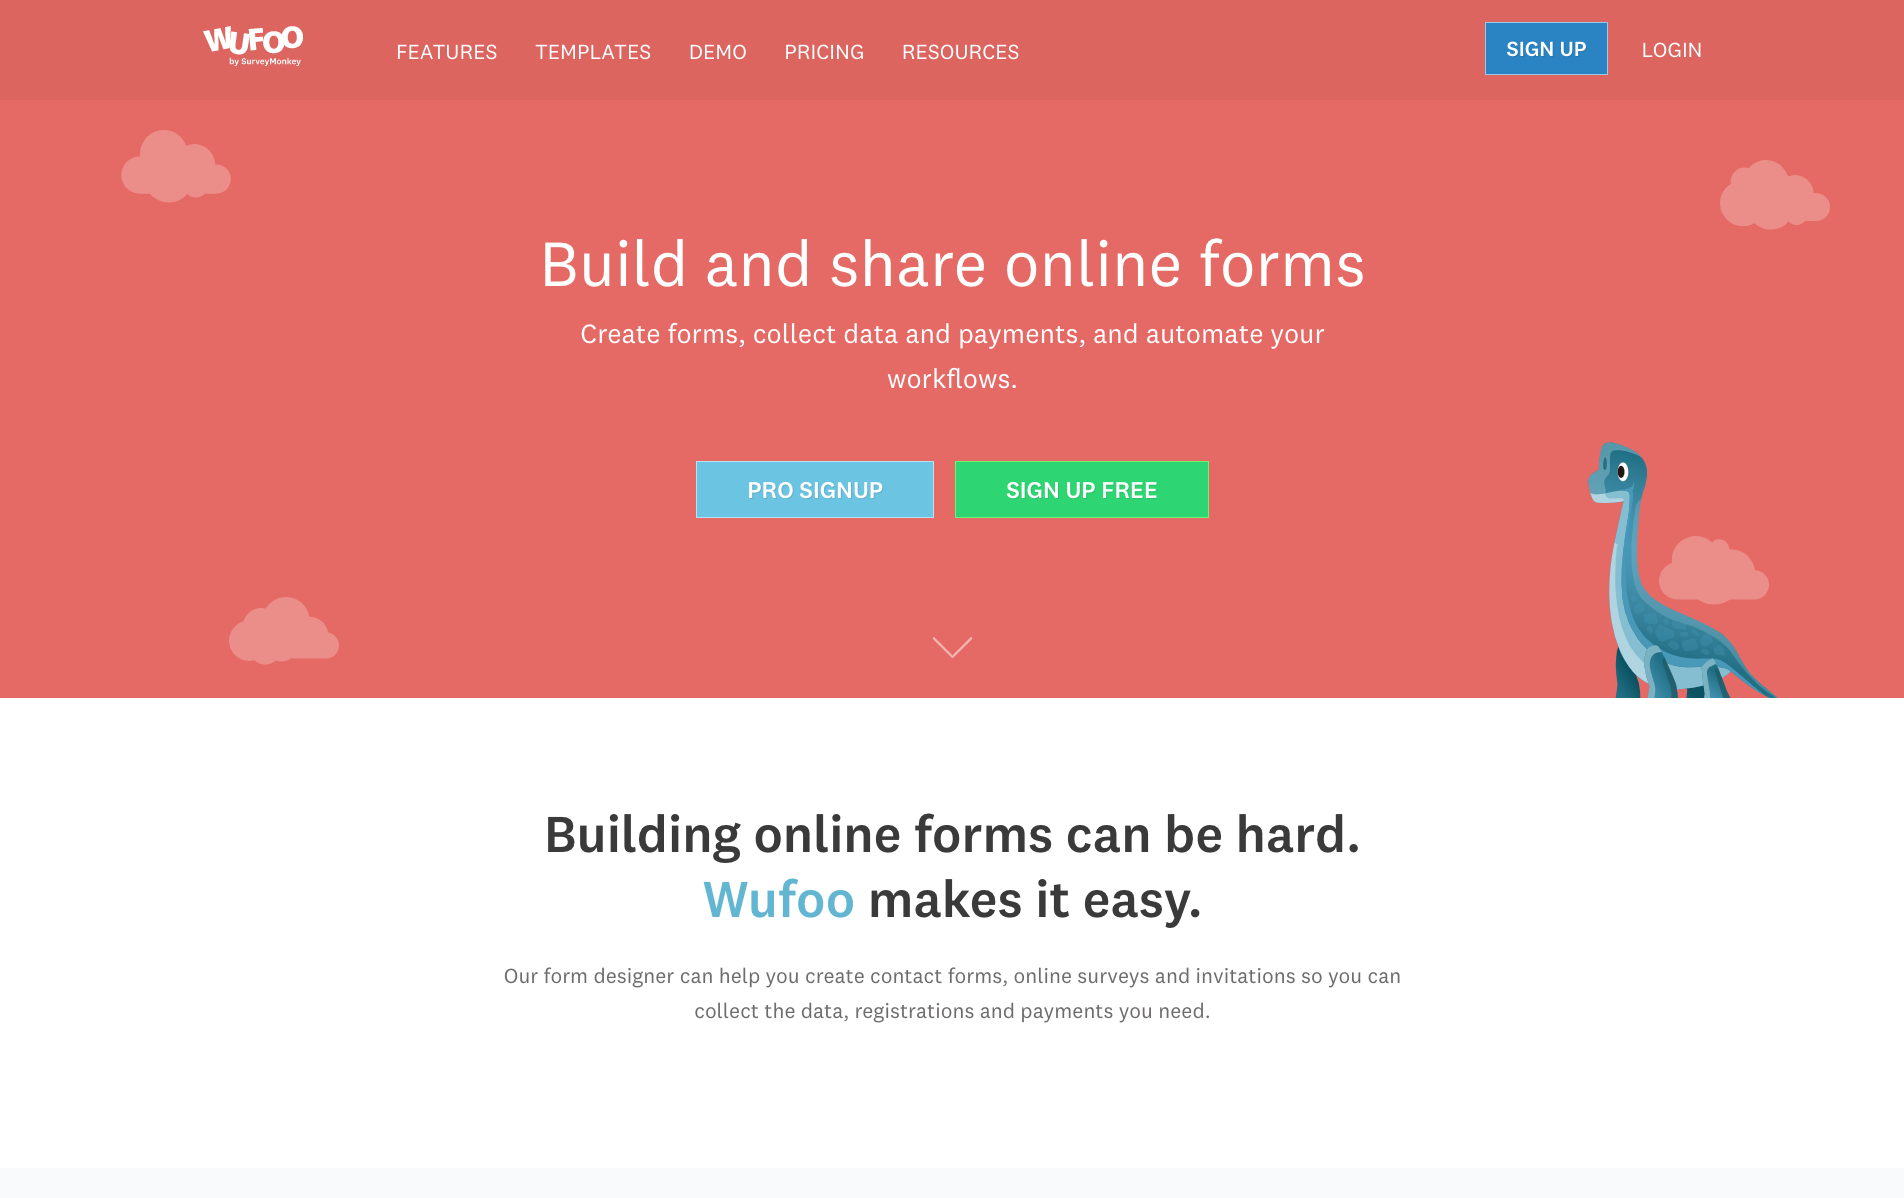 Wufoo website